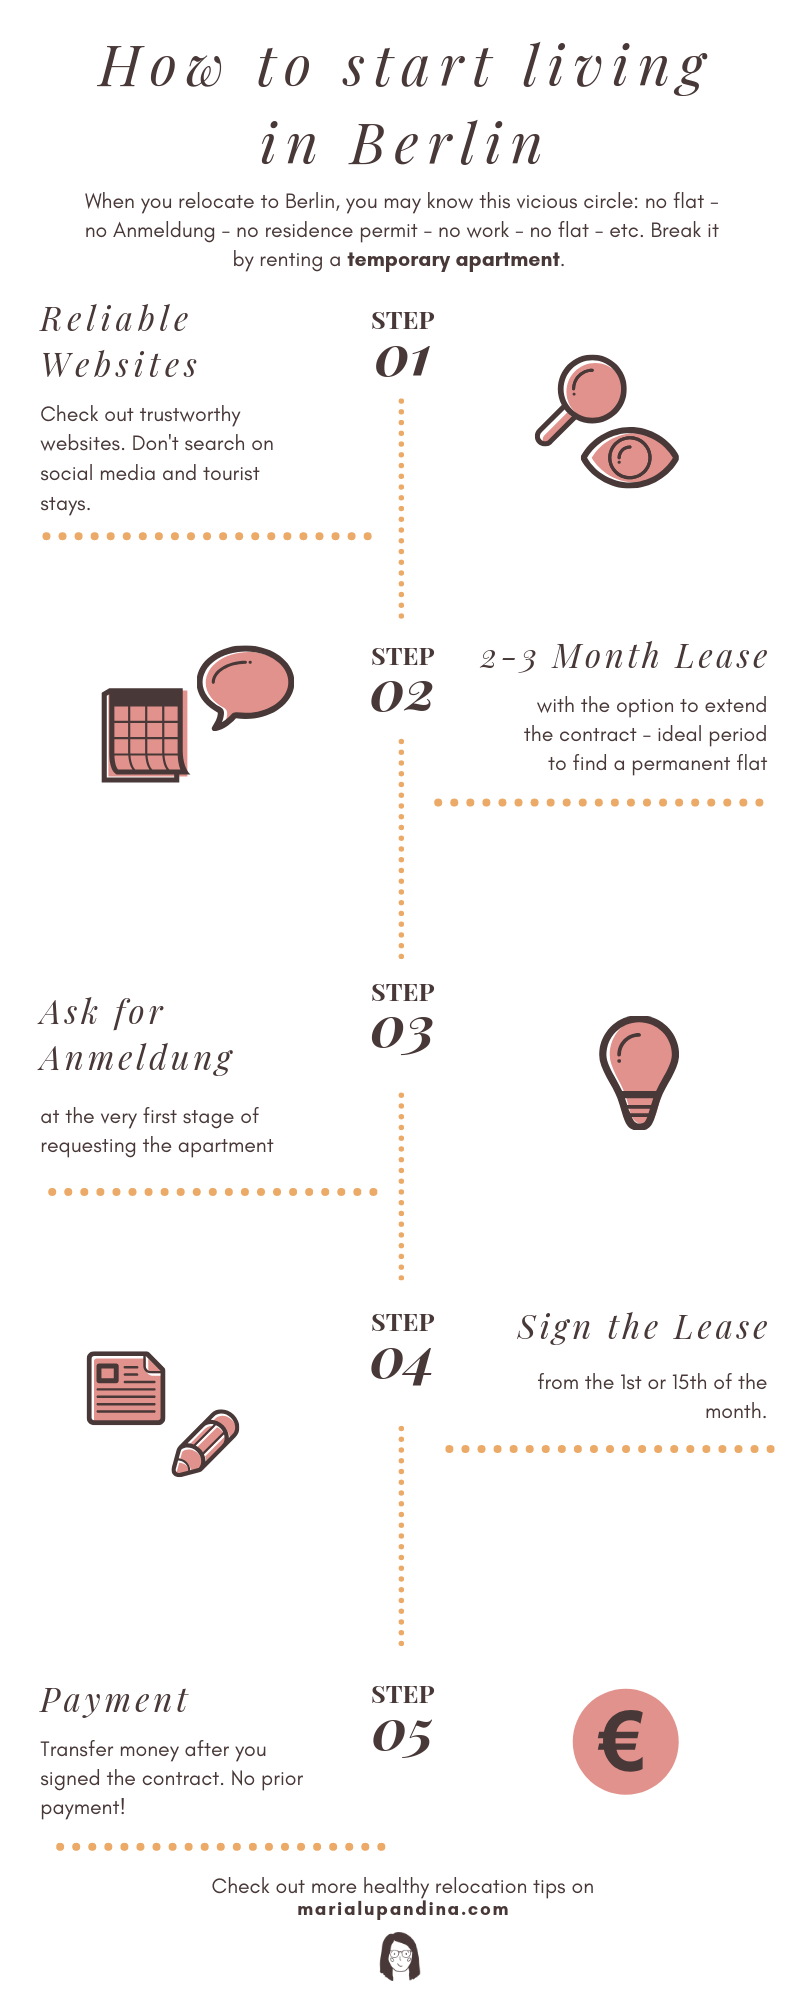 Infographic about steps to take when relocating to Berlin